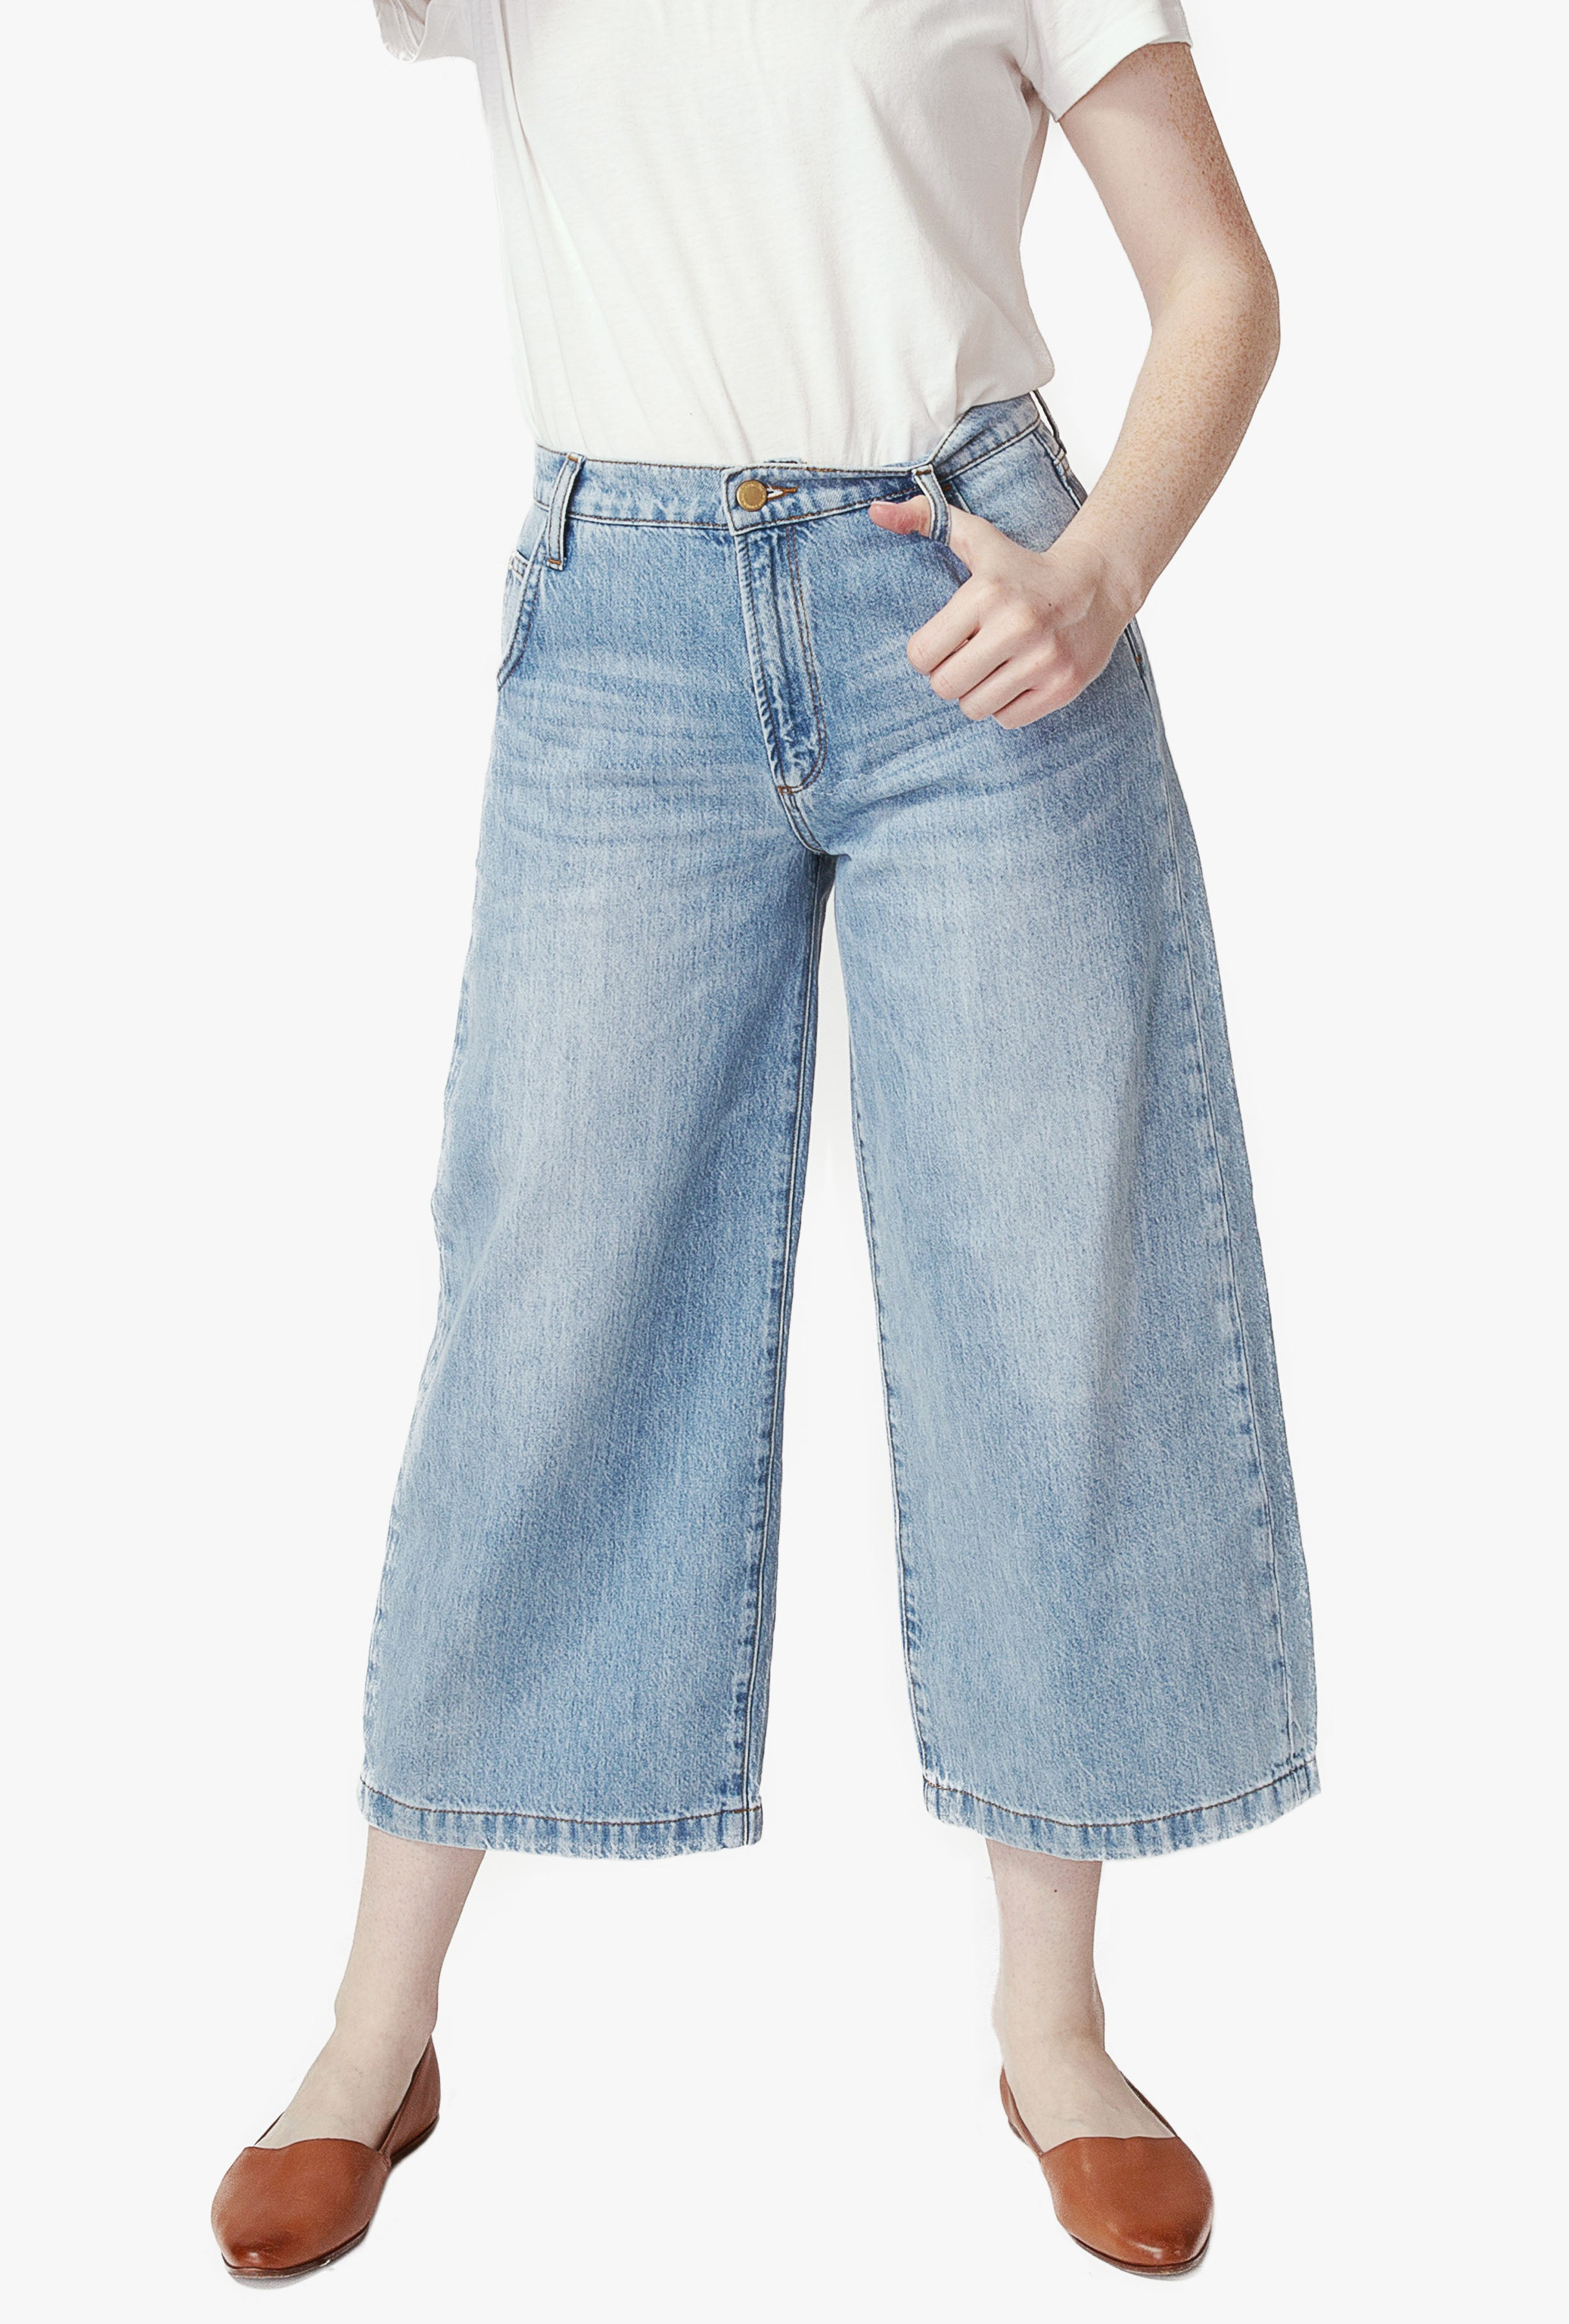 Gaucho Jean in Light Indigo